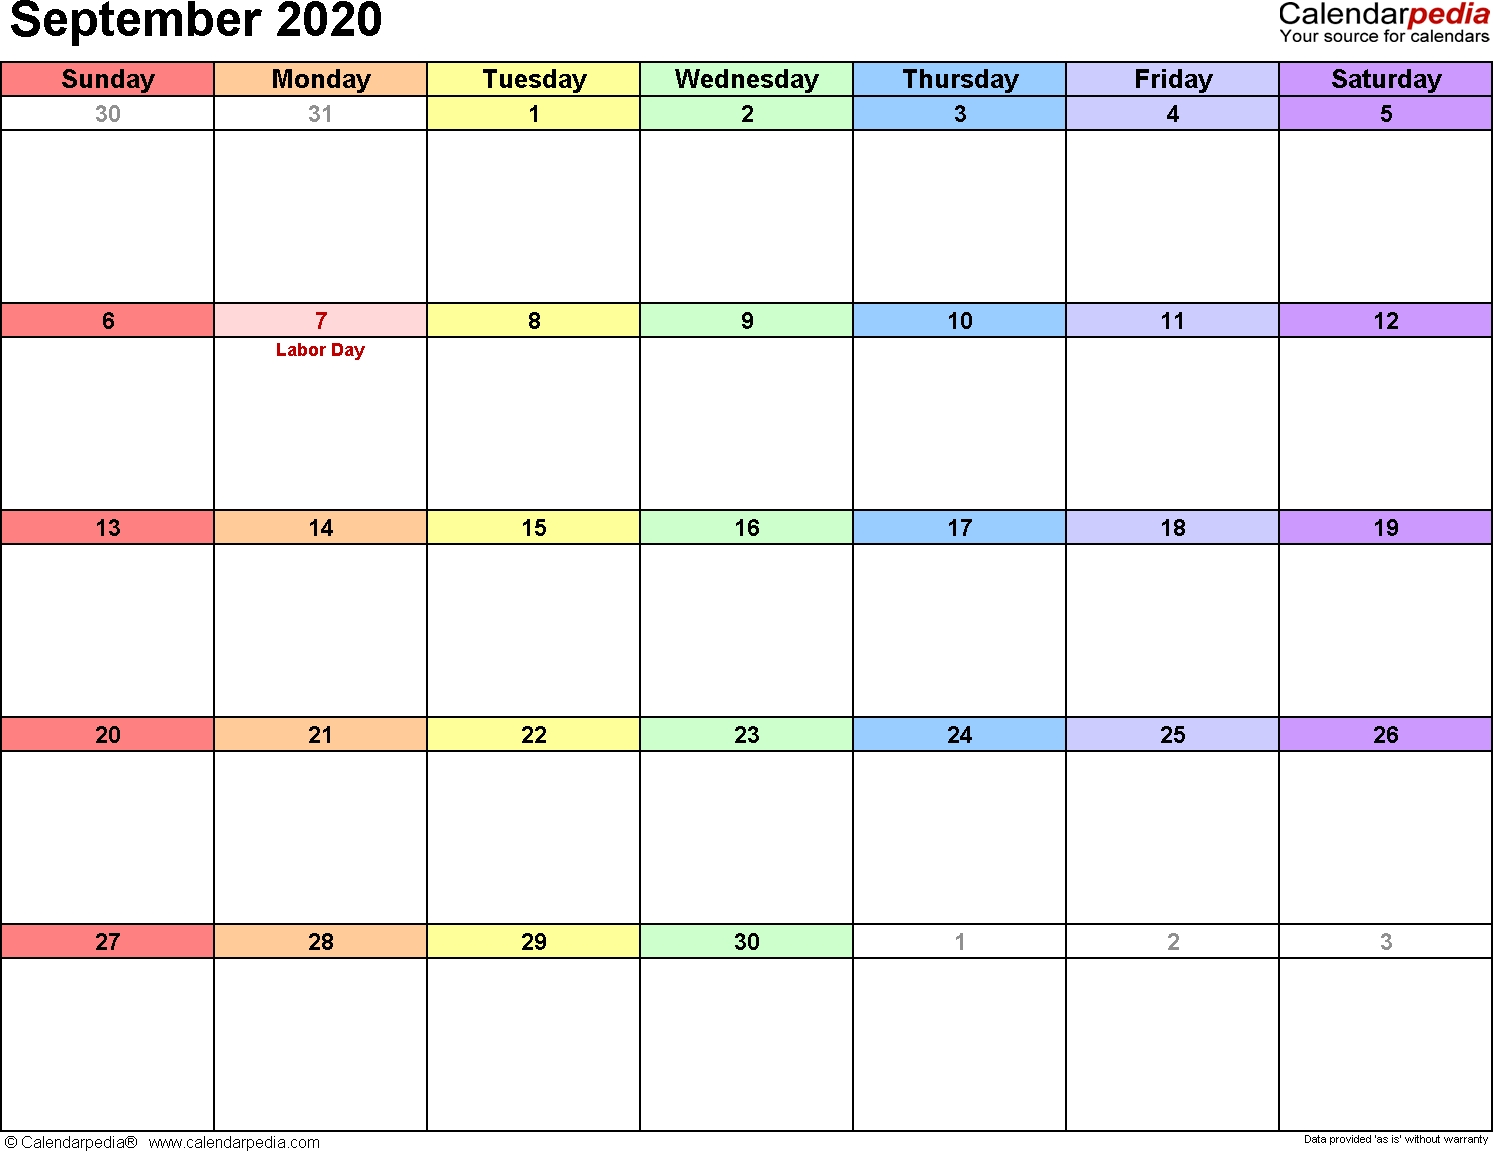 September 2020 Calendars For Word, Excel & Pdf  Calandar For August To December 2020